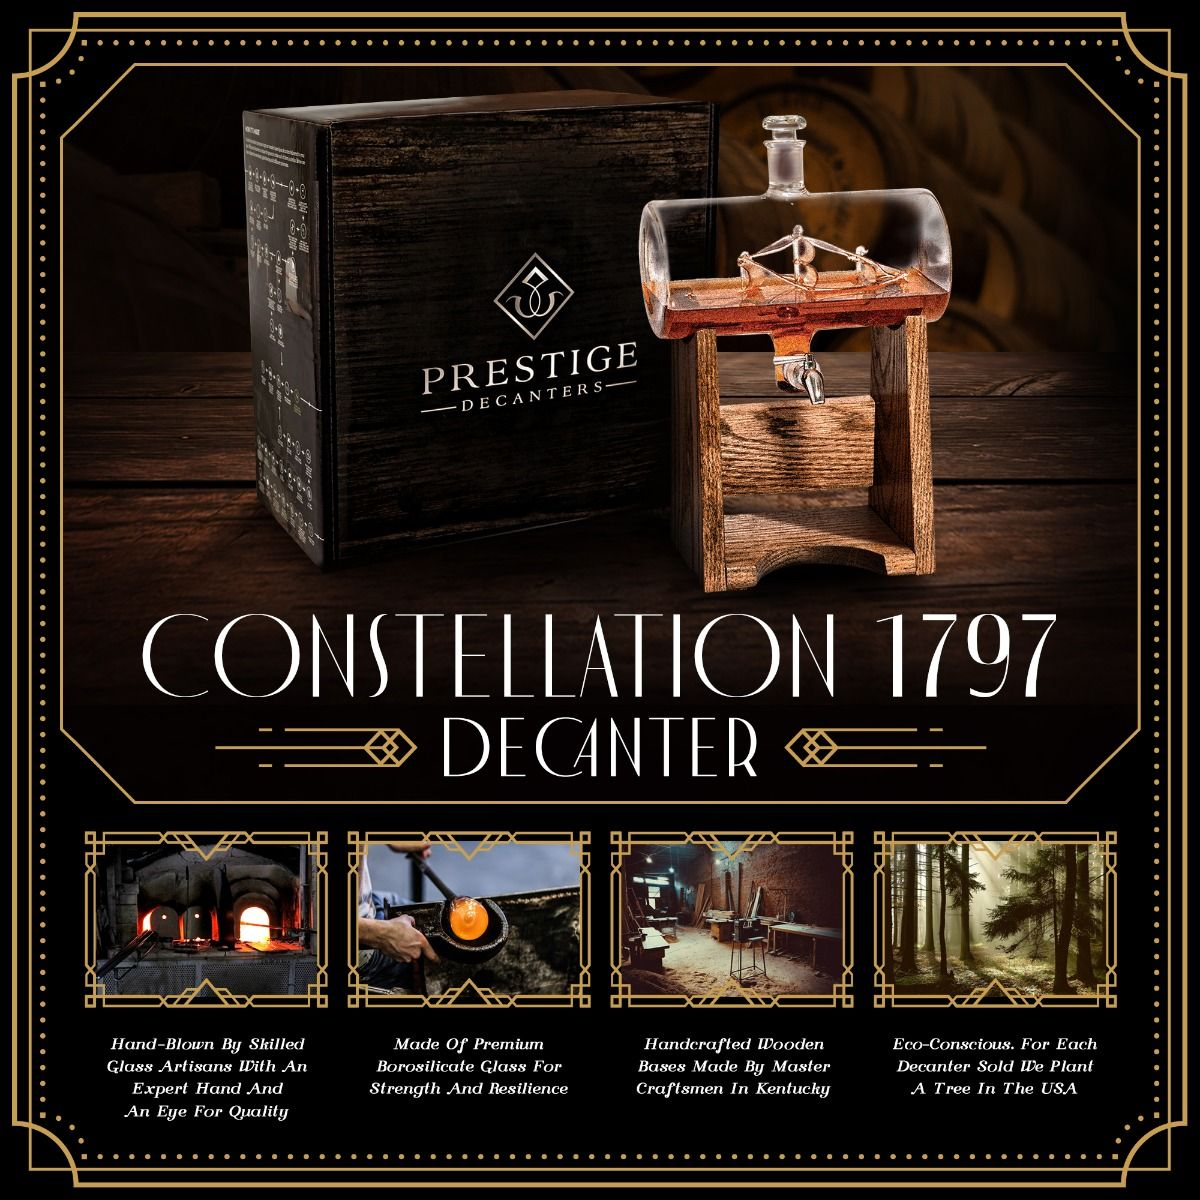 Features of Constellation 1797 Decanter